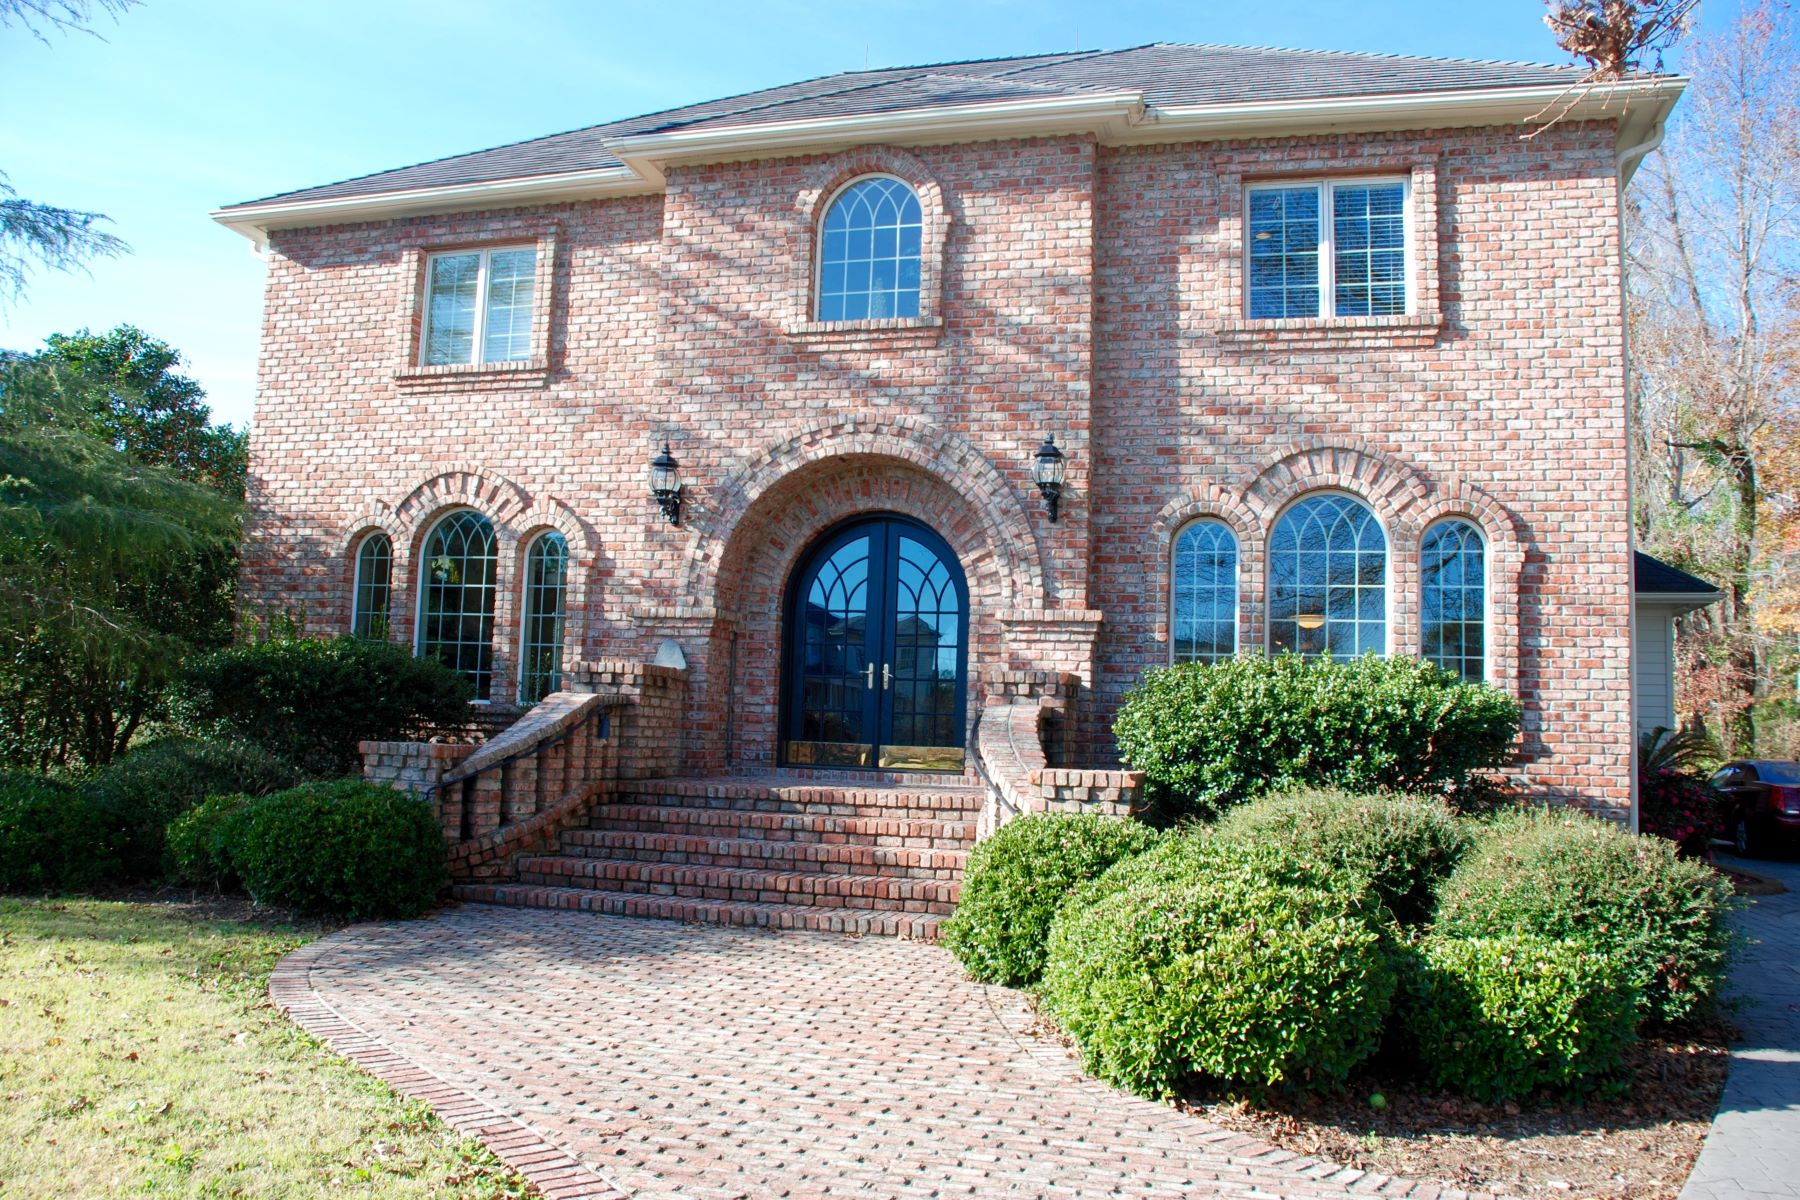 Single Family Home for Sale at Stately Custom Built Brick Home 2768 Pinecrest Drive SE Southport, North Carolina 28461 United States